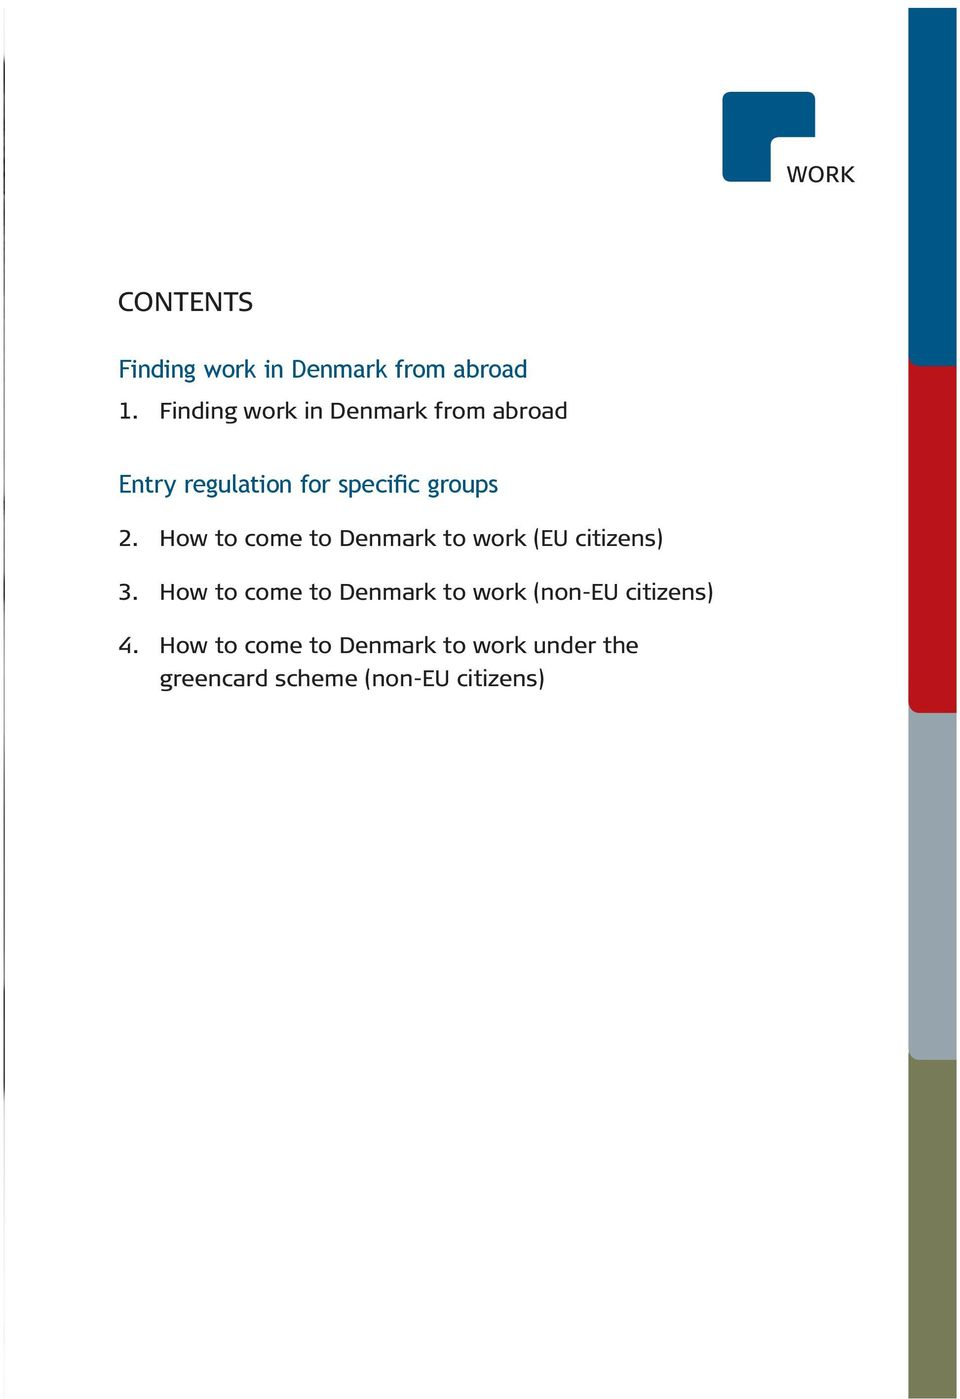 How to come to Denmark to work (EU citizens) 3.